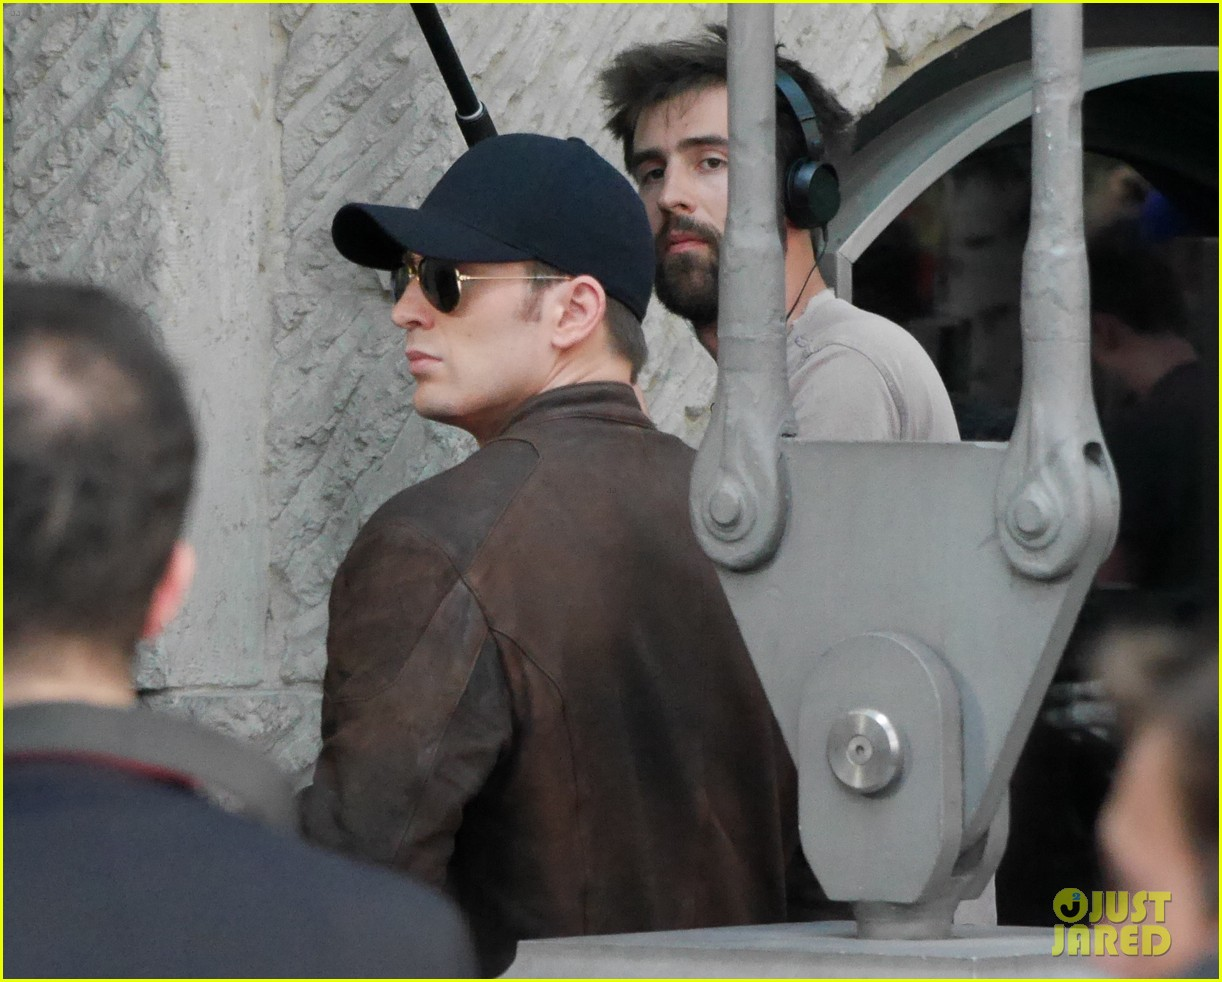 Franchise Marvel/Disney #3 Chris-evans-keeps-filming-captain-america-civil-war-22